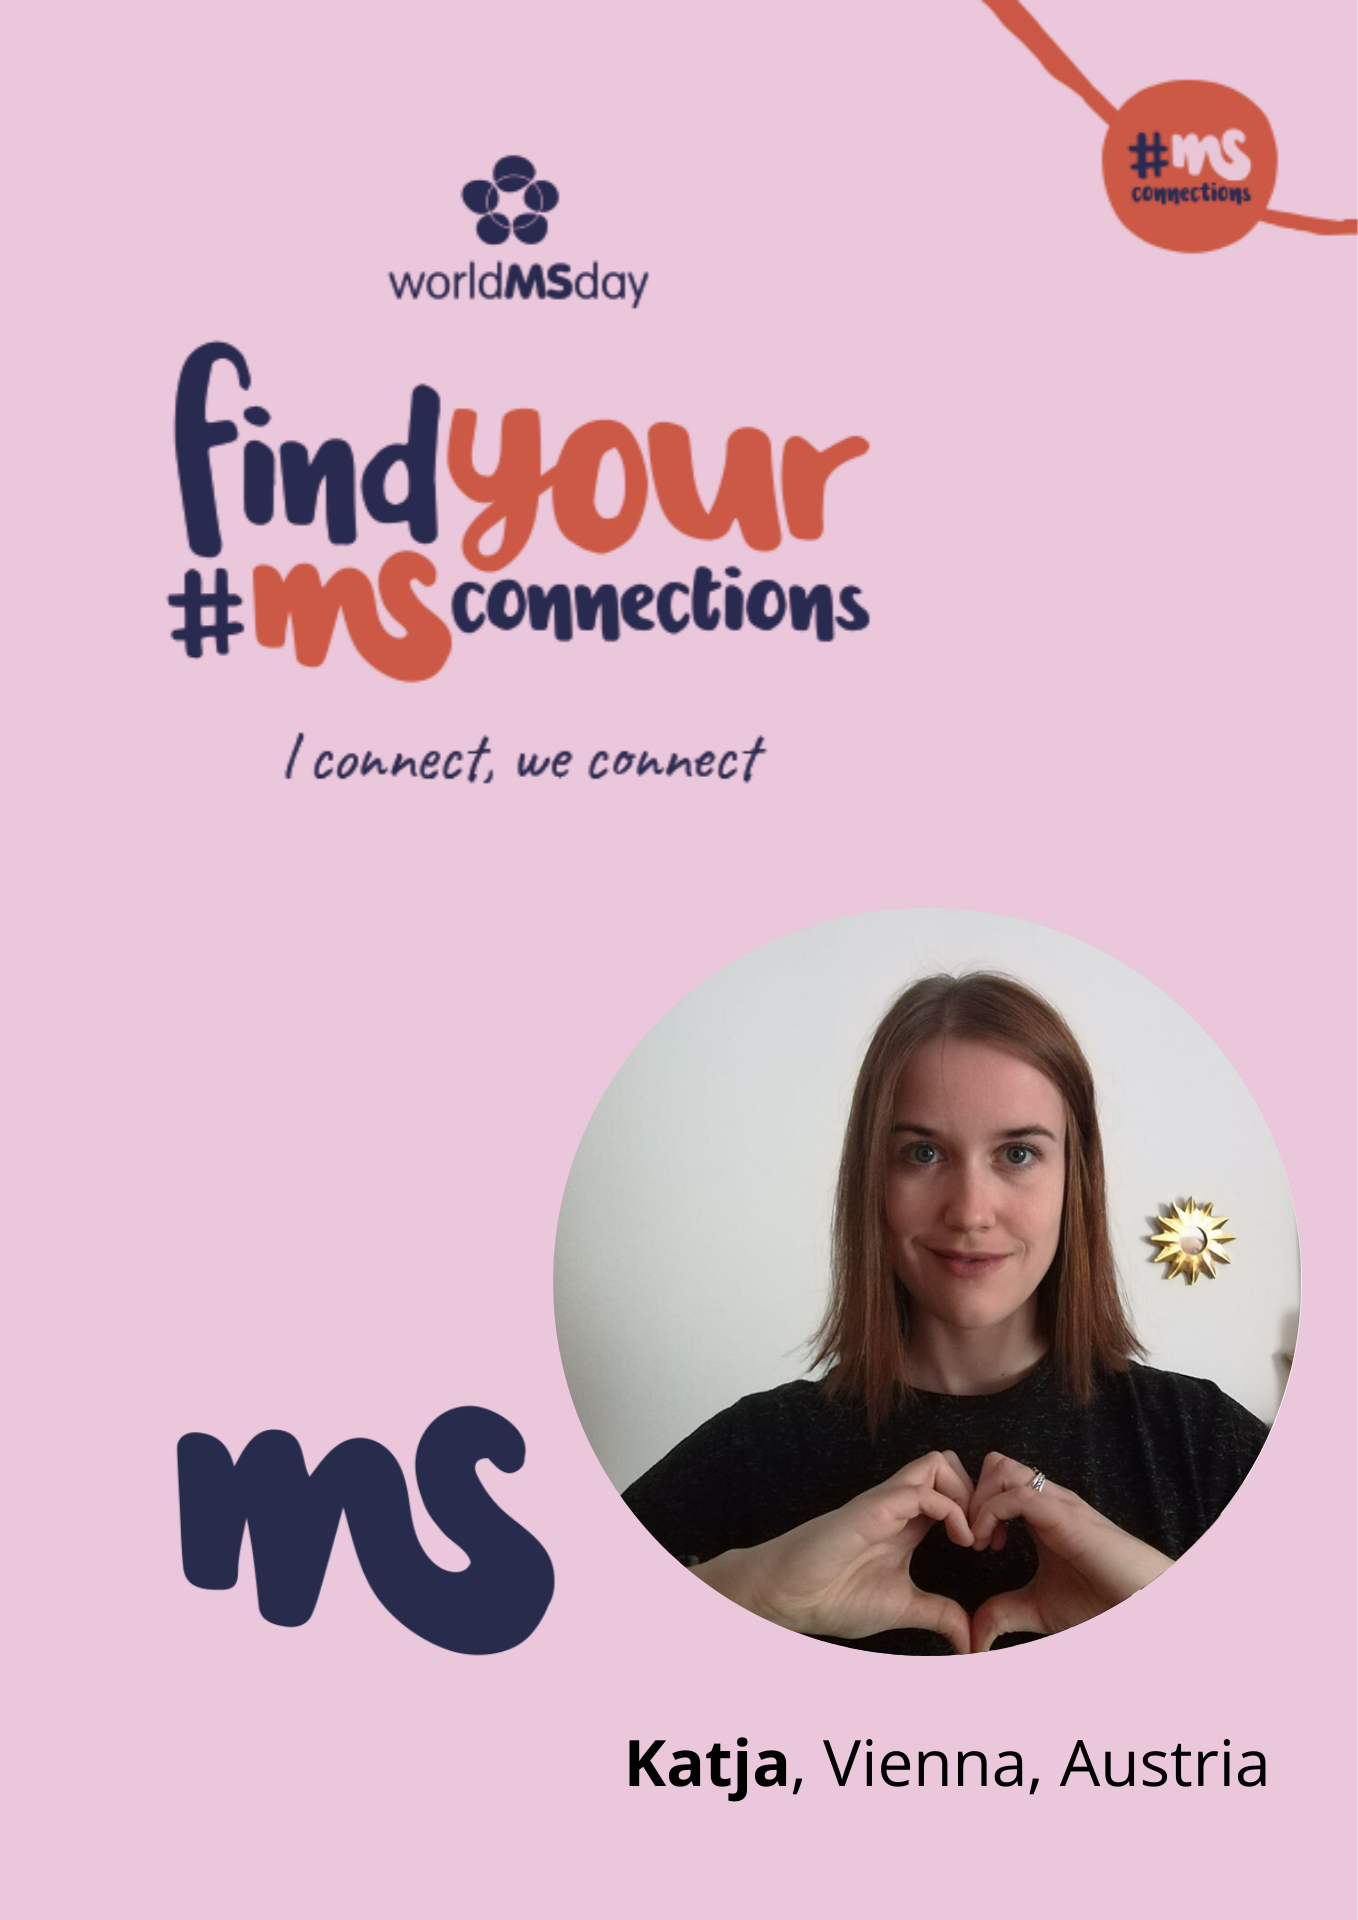 Rechteck mit Bild von Katja, Vienna, Austria, Text: find your #MSConnections